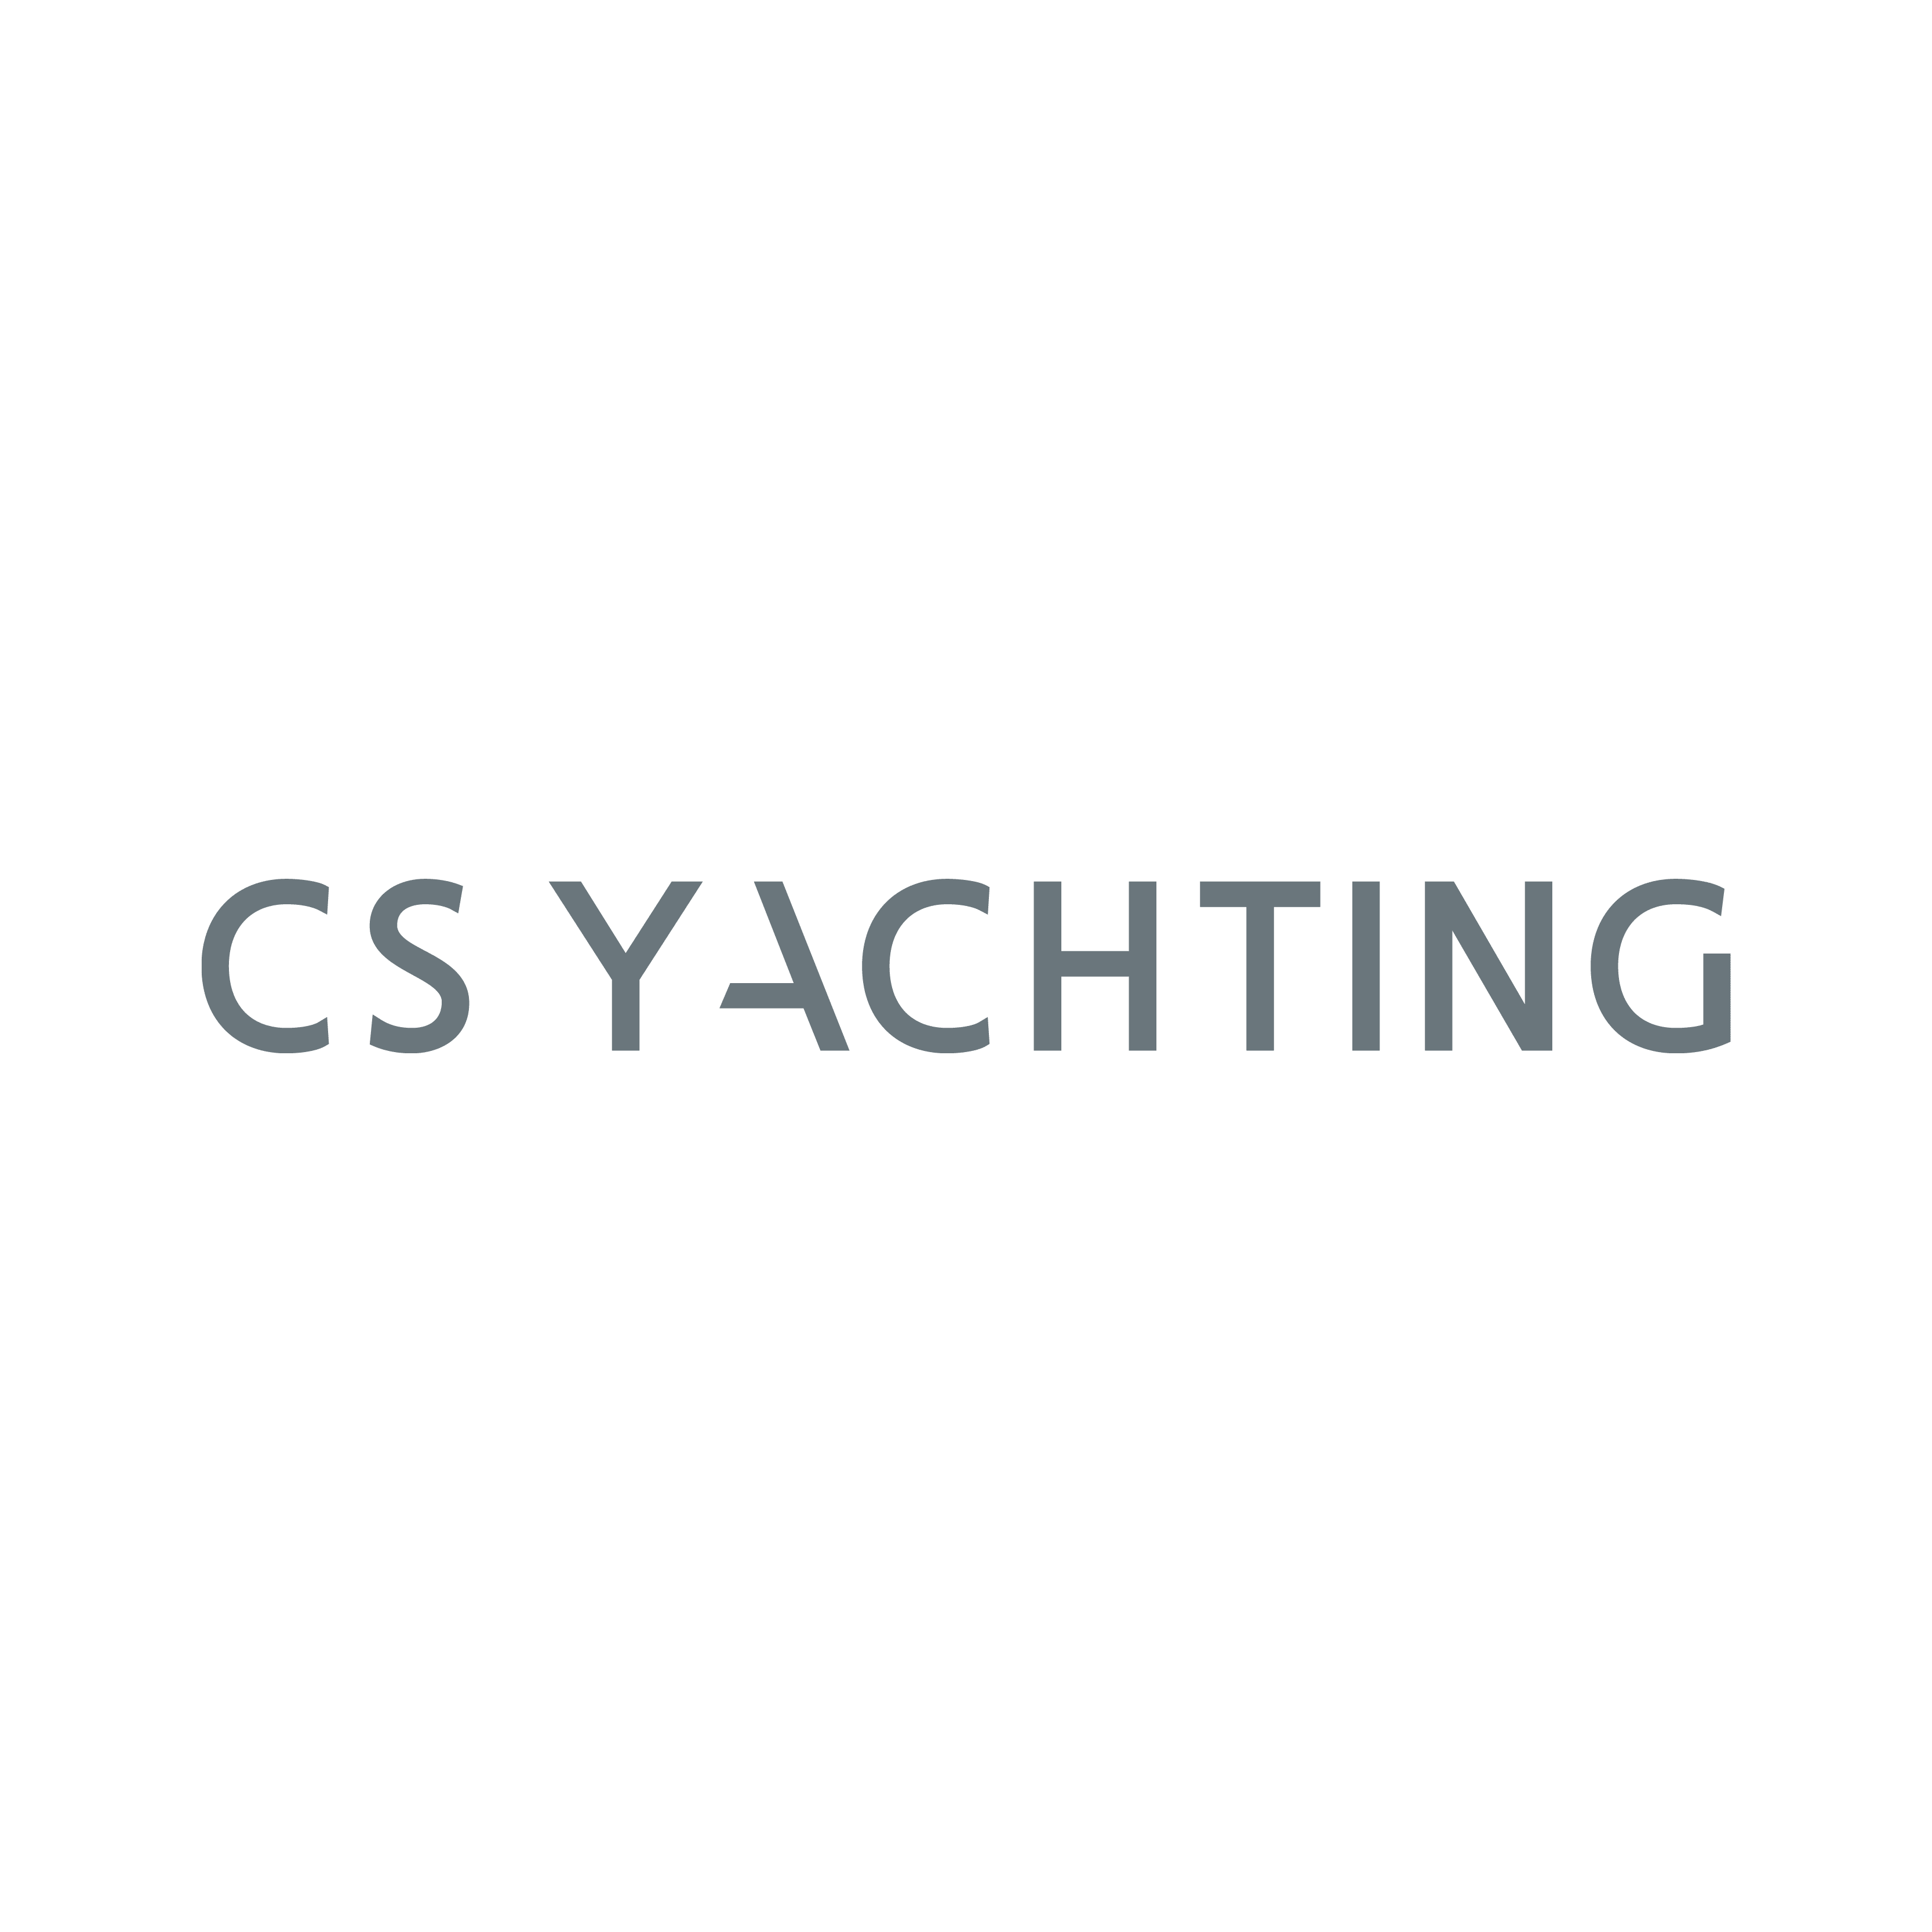 Logo CS Yachting